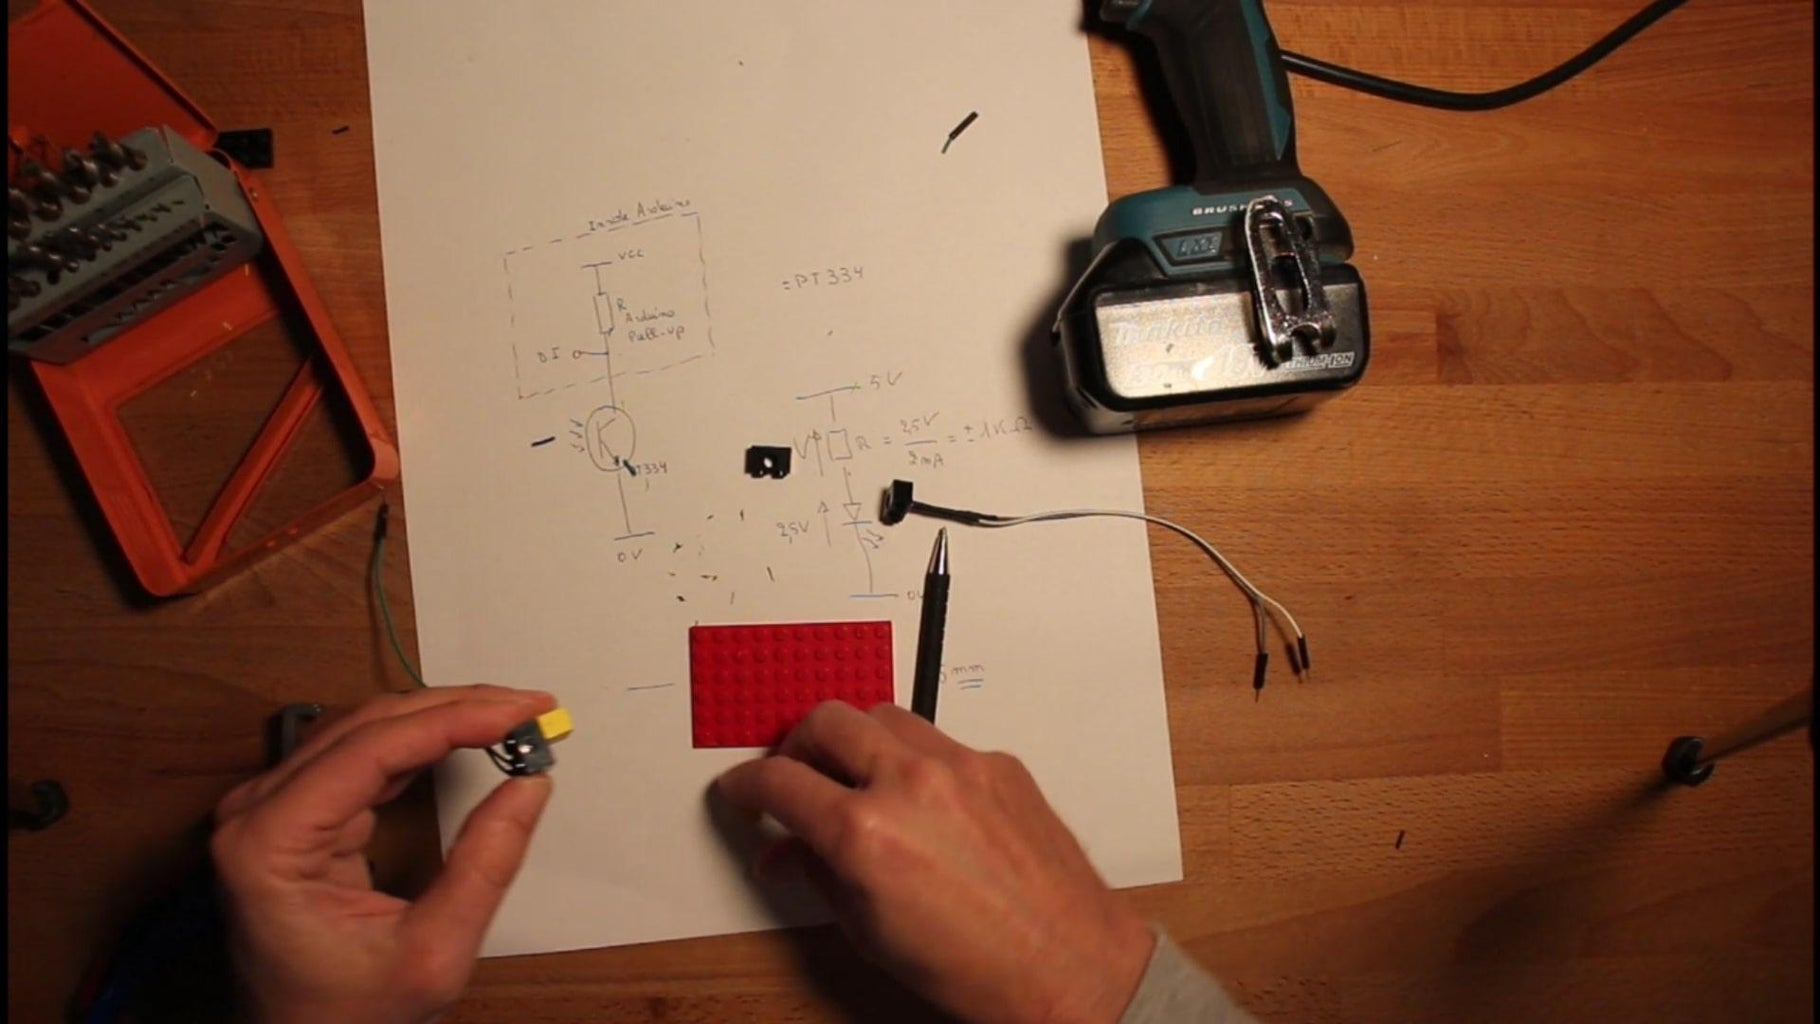 Assembly of Photocell.